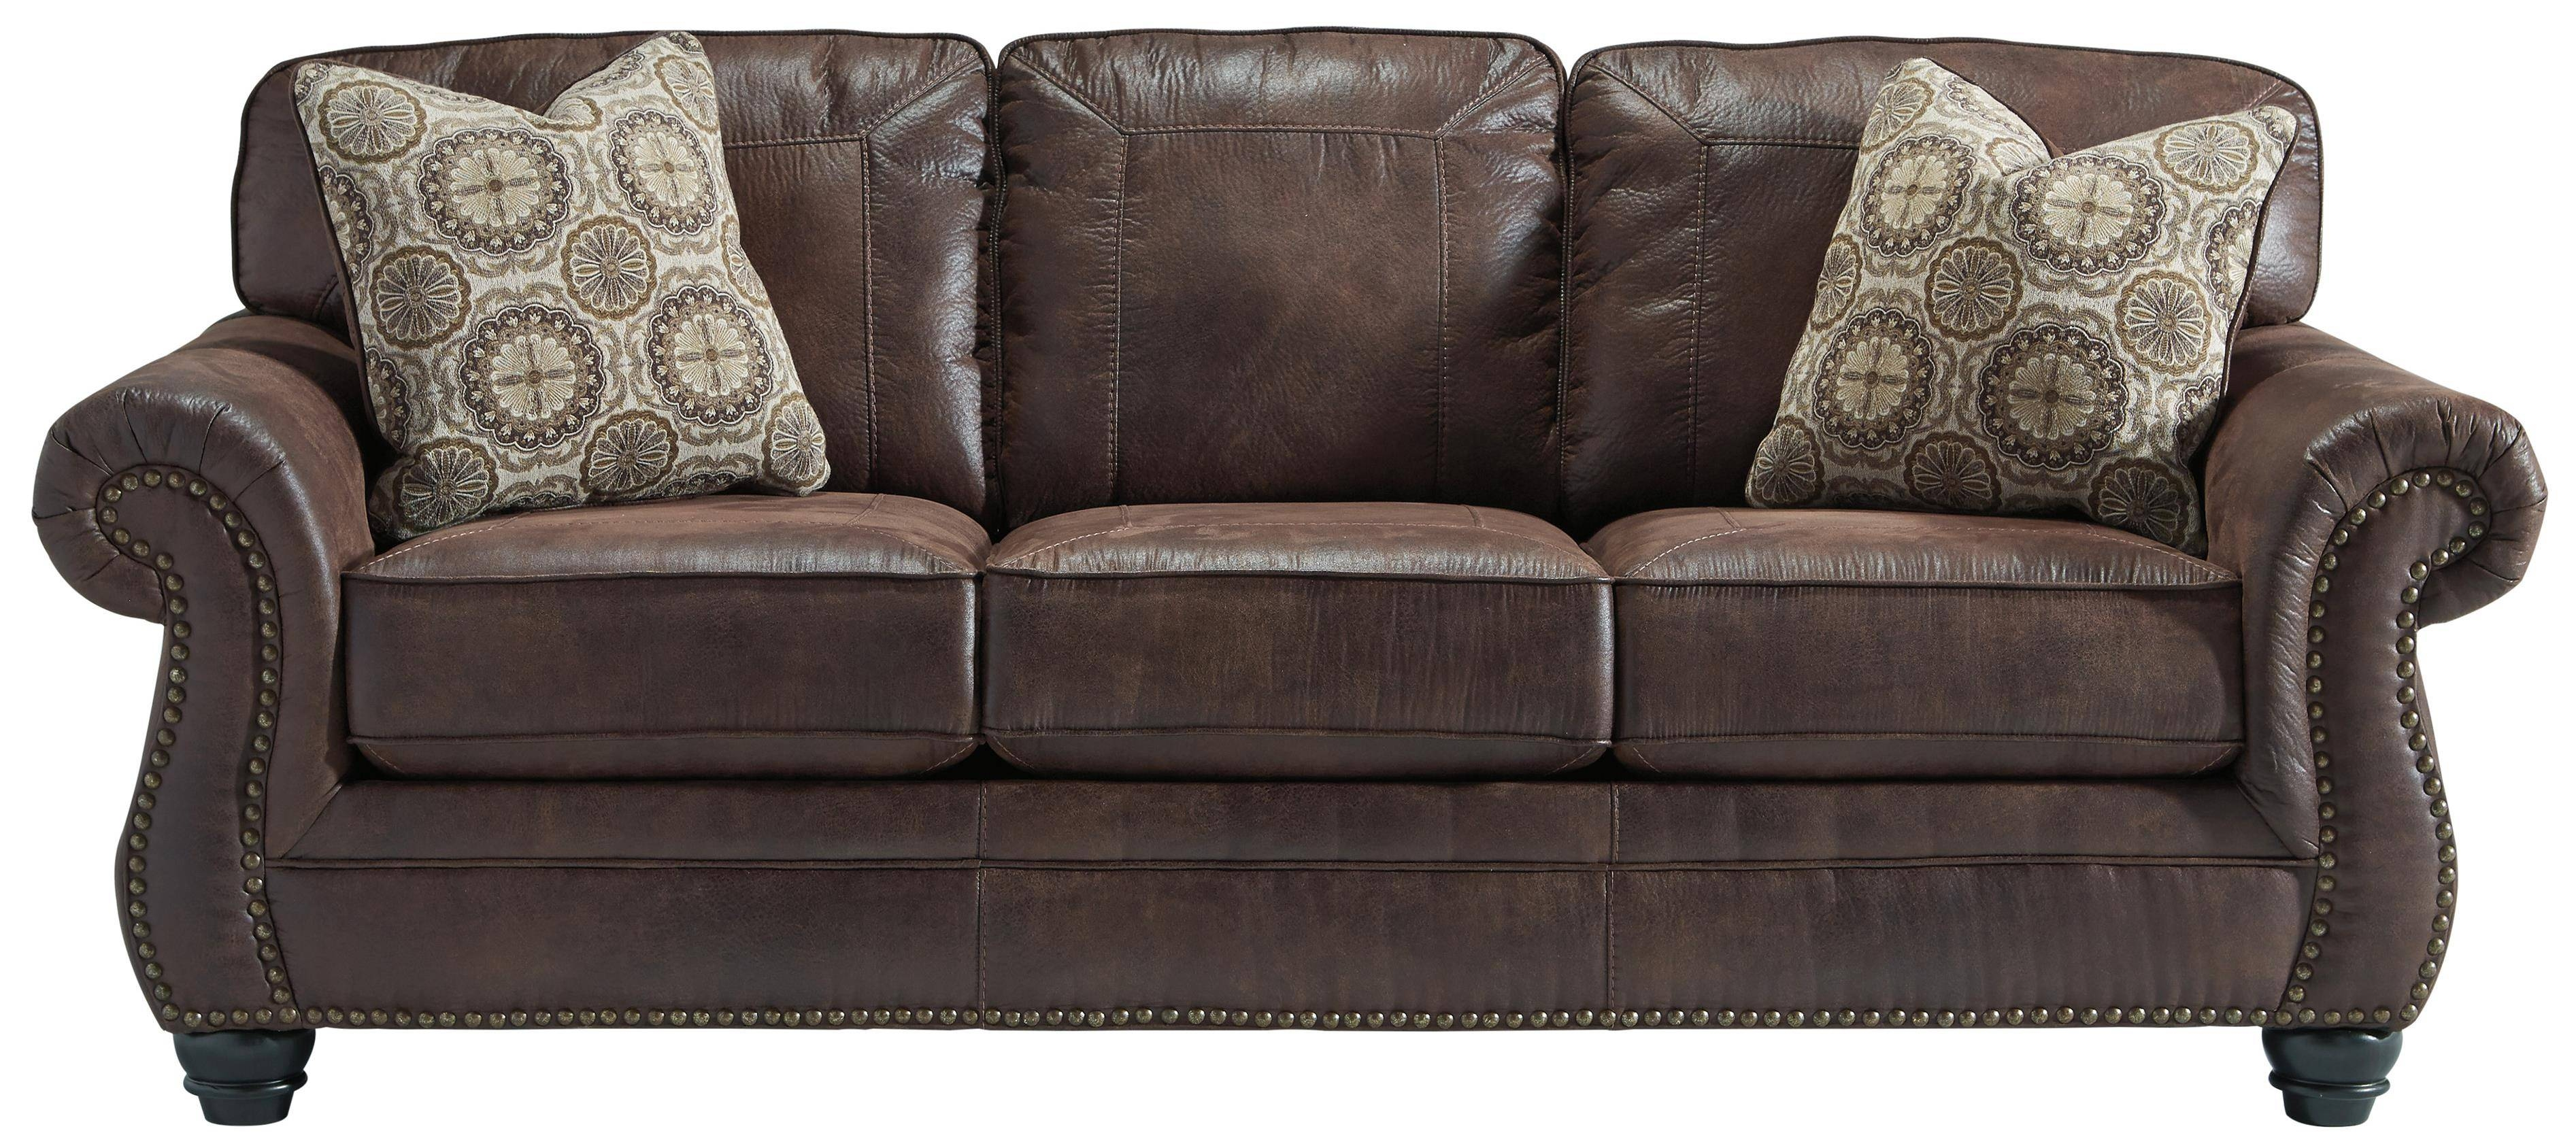 Faux Leather Sofa With Rolled Arms And Nailhead Trimbenchcraft within Benchcraft Leather Sofas (Image 14 of 15)